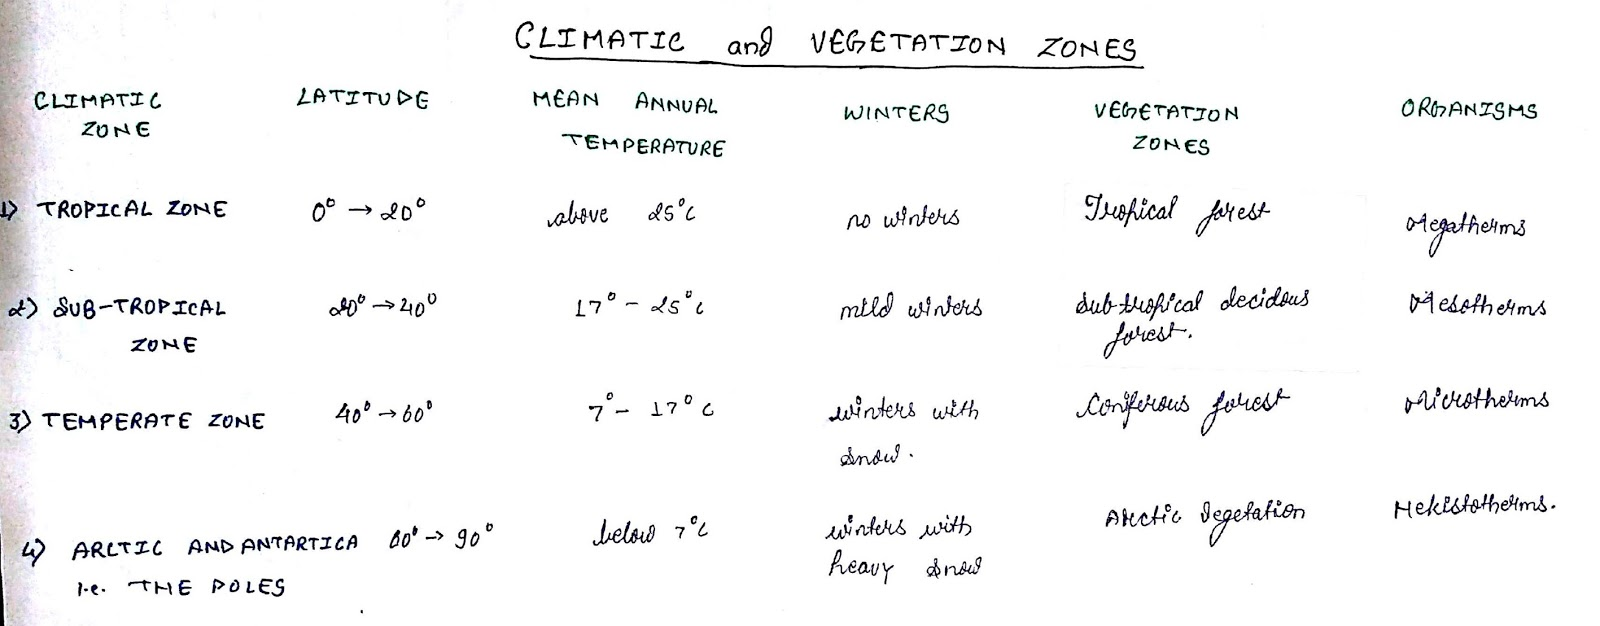 Avys class notes ecology ecological terms and species flow chart of climate zones geenschuldenfo Image collections